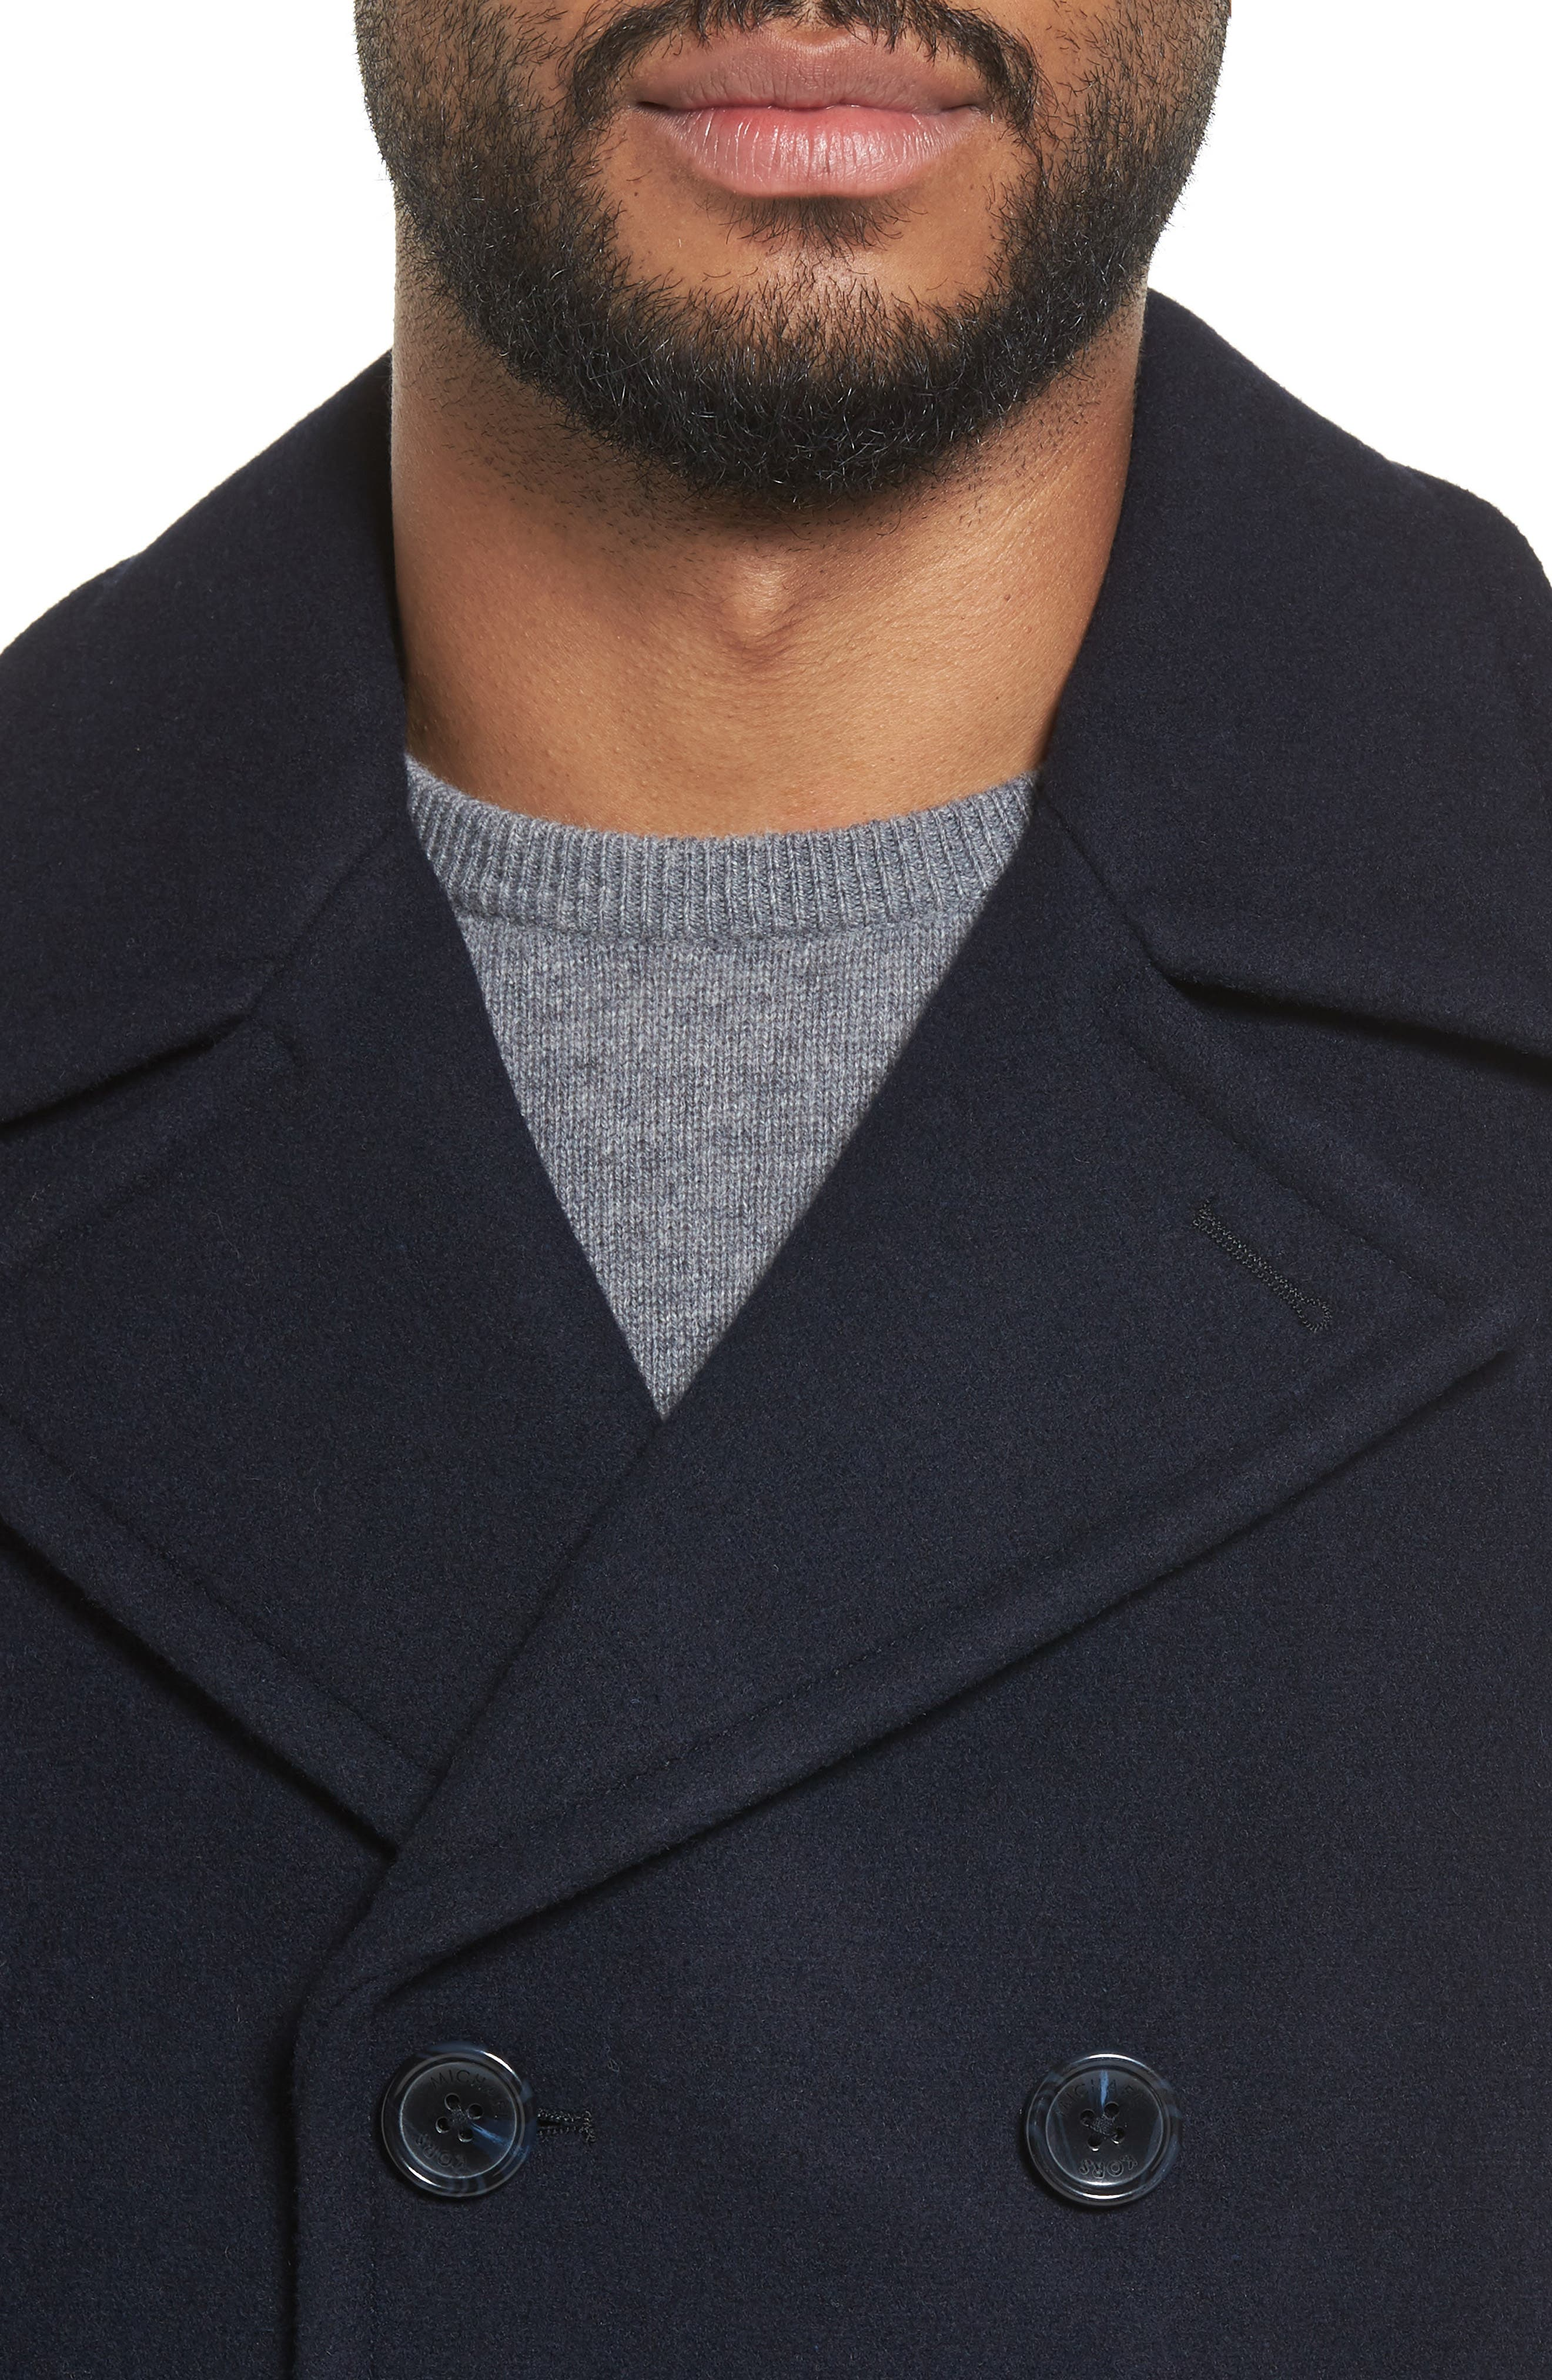 Wool Blend Double Breasted Peacoat,                             Alternate thumbnail 74, color,